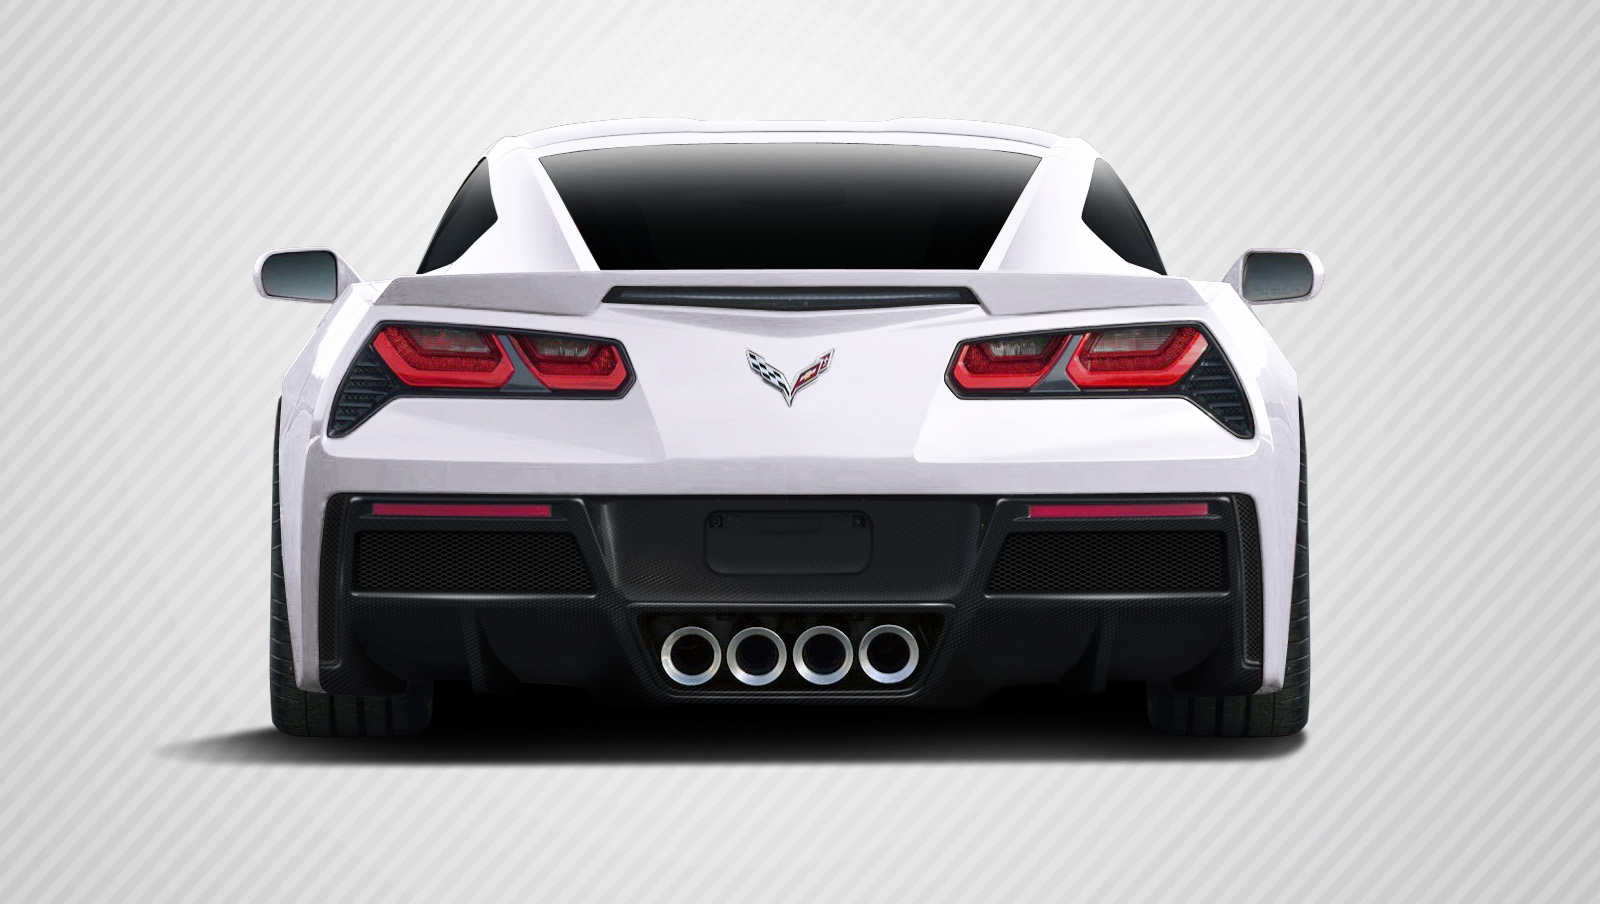 2014-2017 Chevrolet Corvette C7 Carbon Creations Gran Veloce Rear Diffuser- 1 Piece